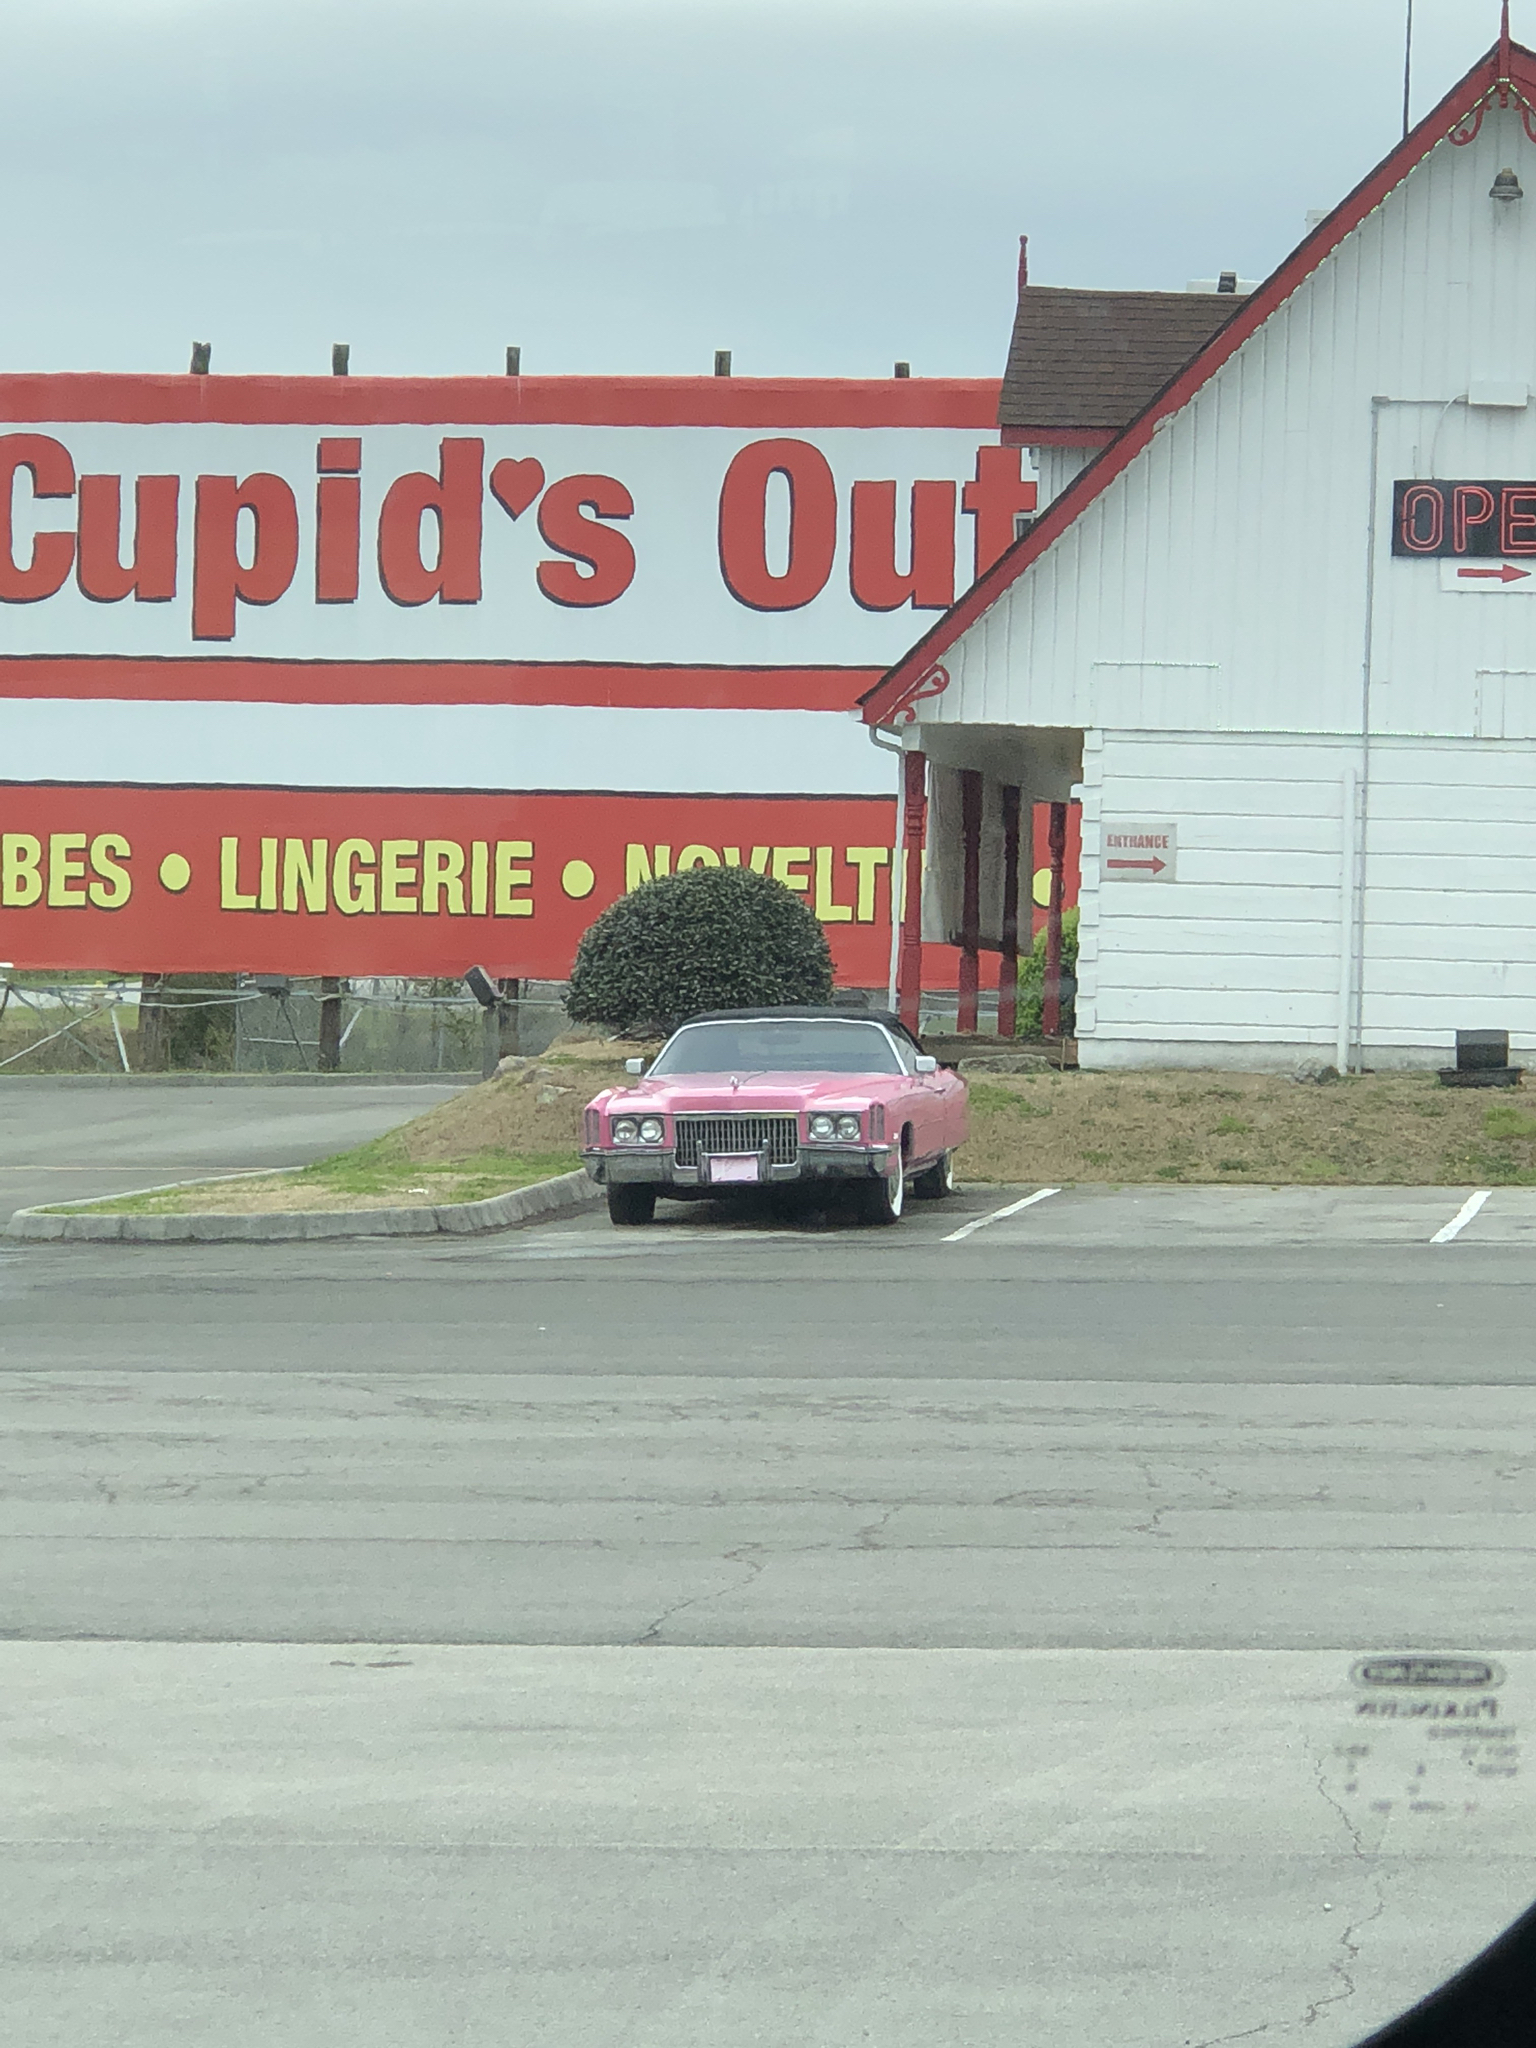 Cupids outlet knoxville tn